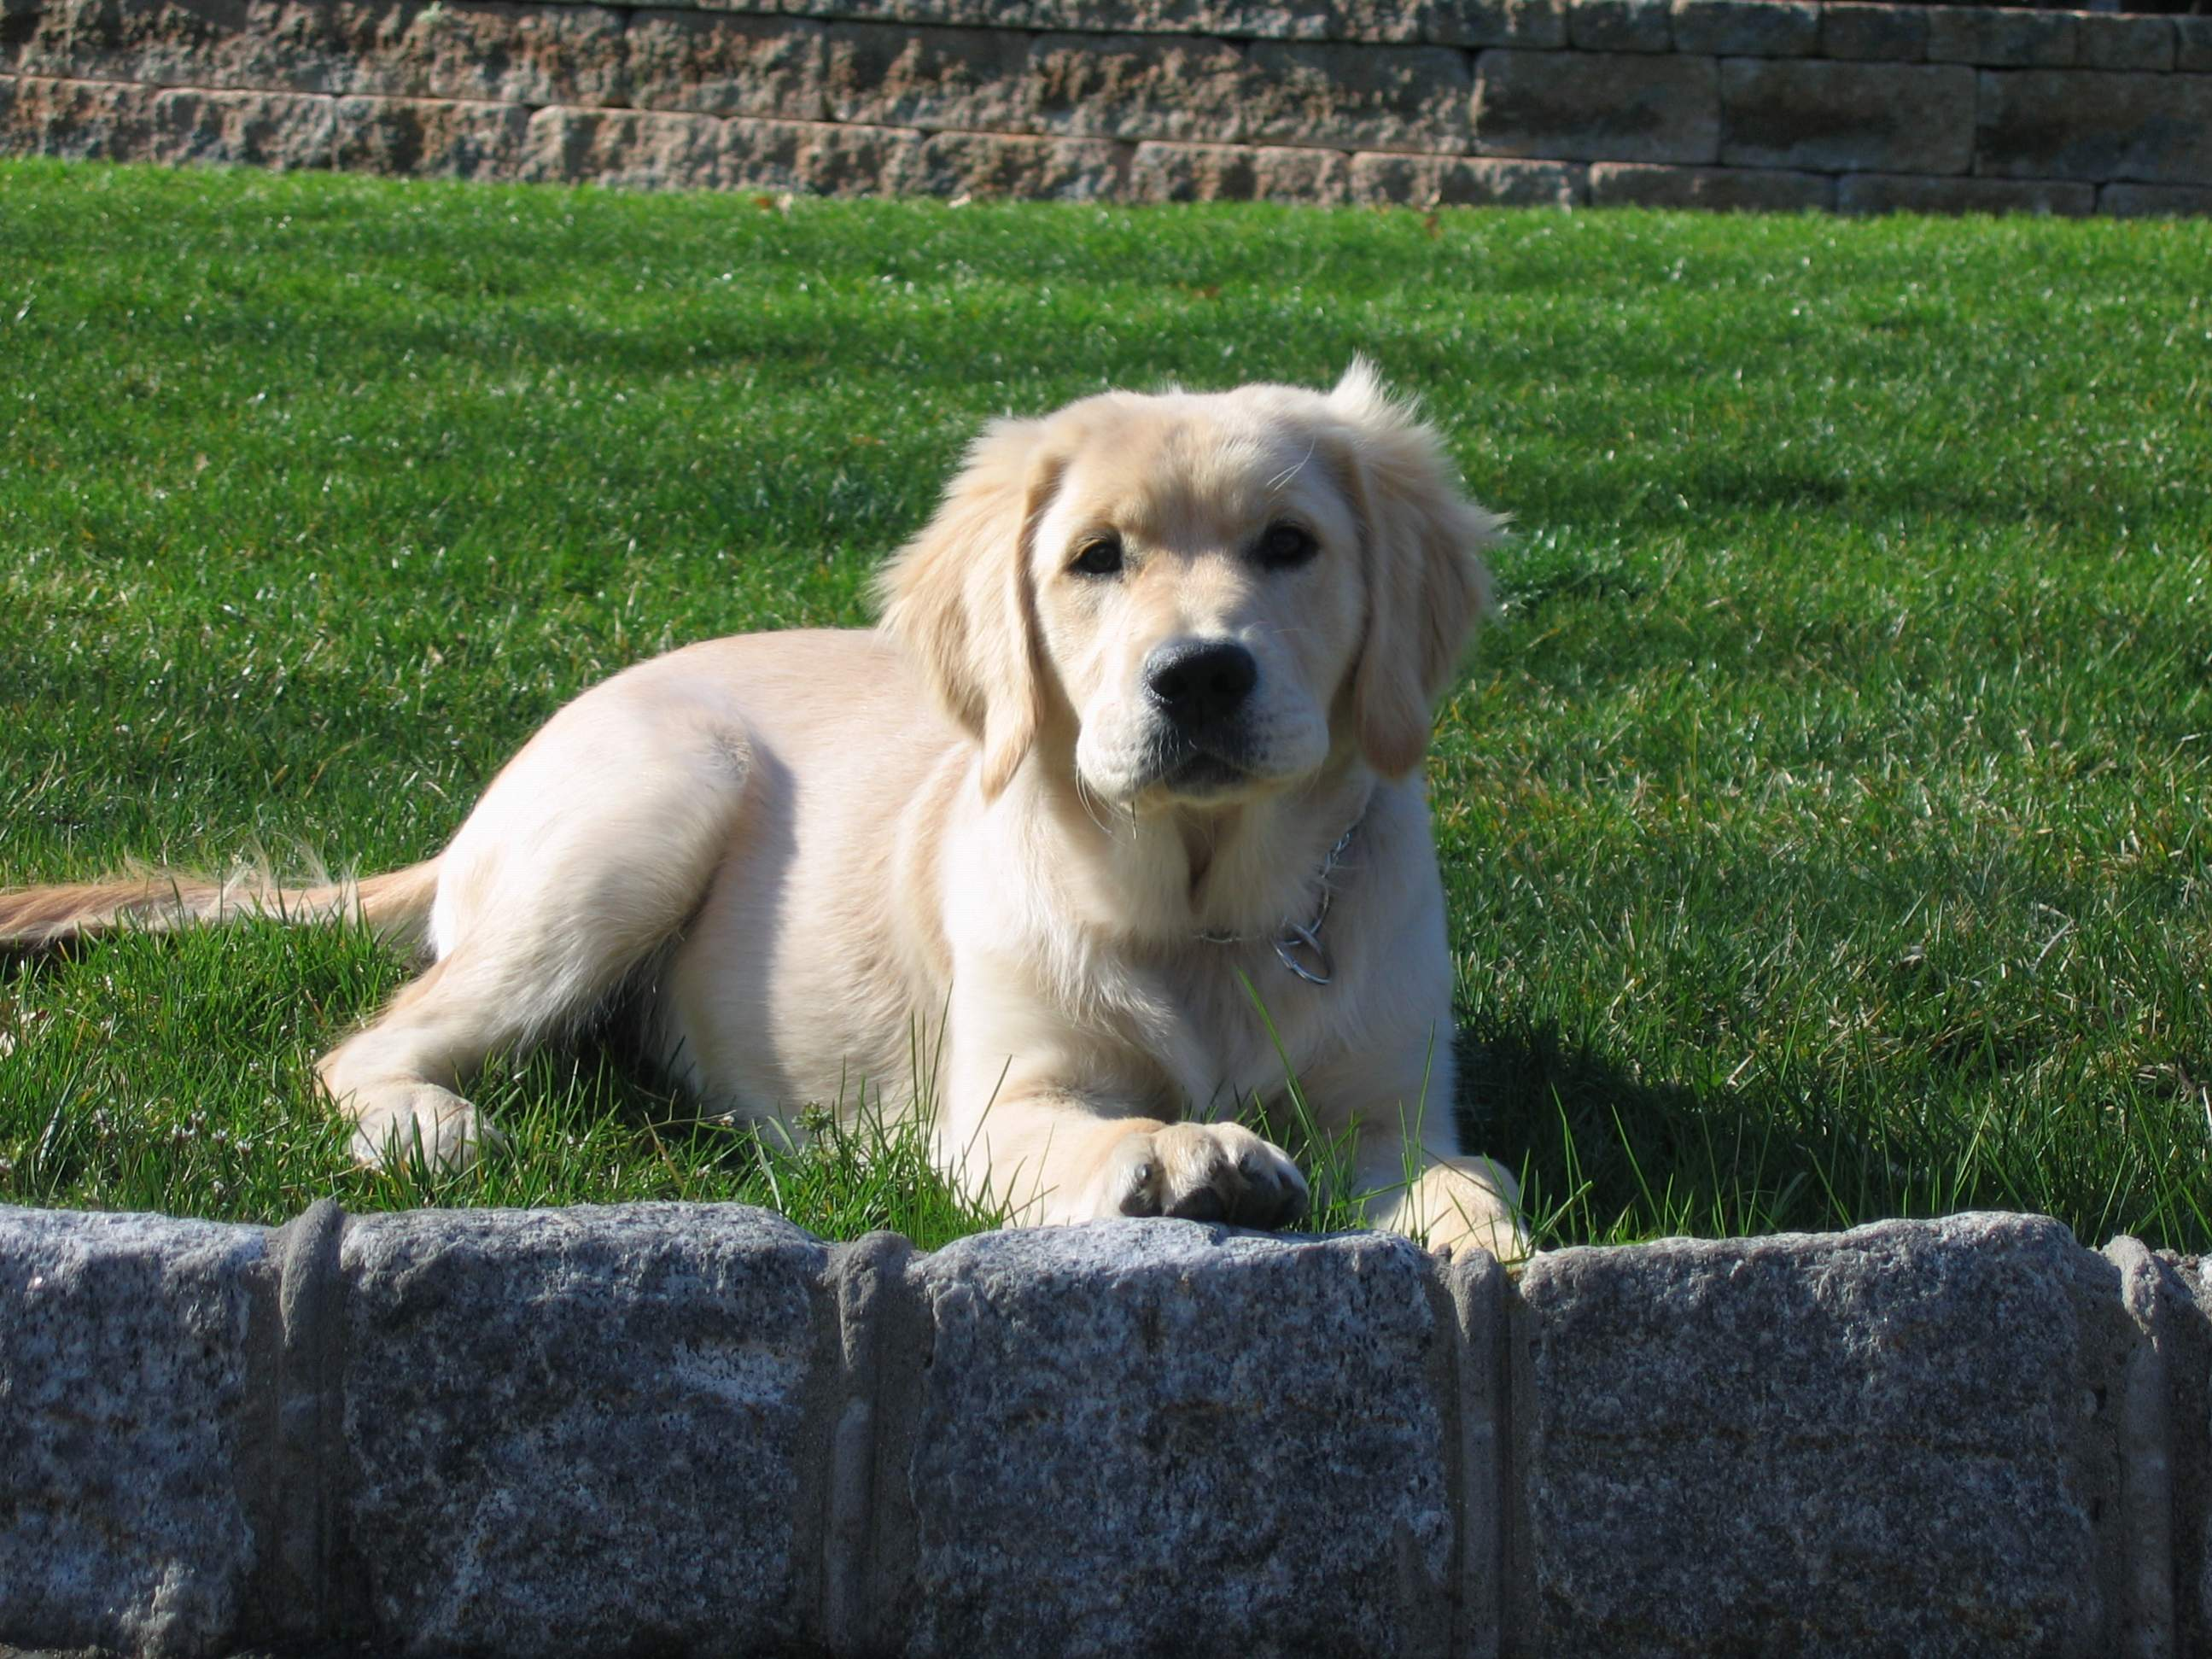 Still Looking For A Breeder In Nj Or Area Golden Retrievers